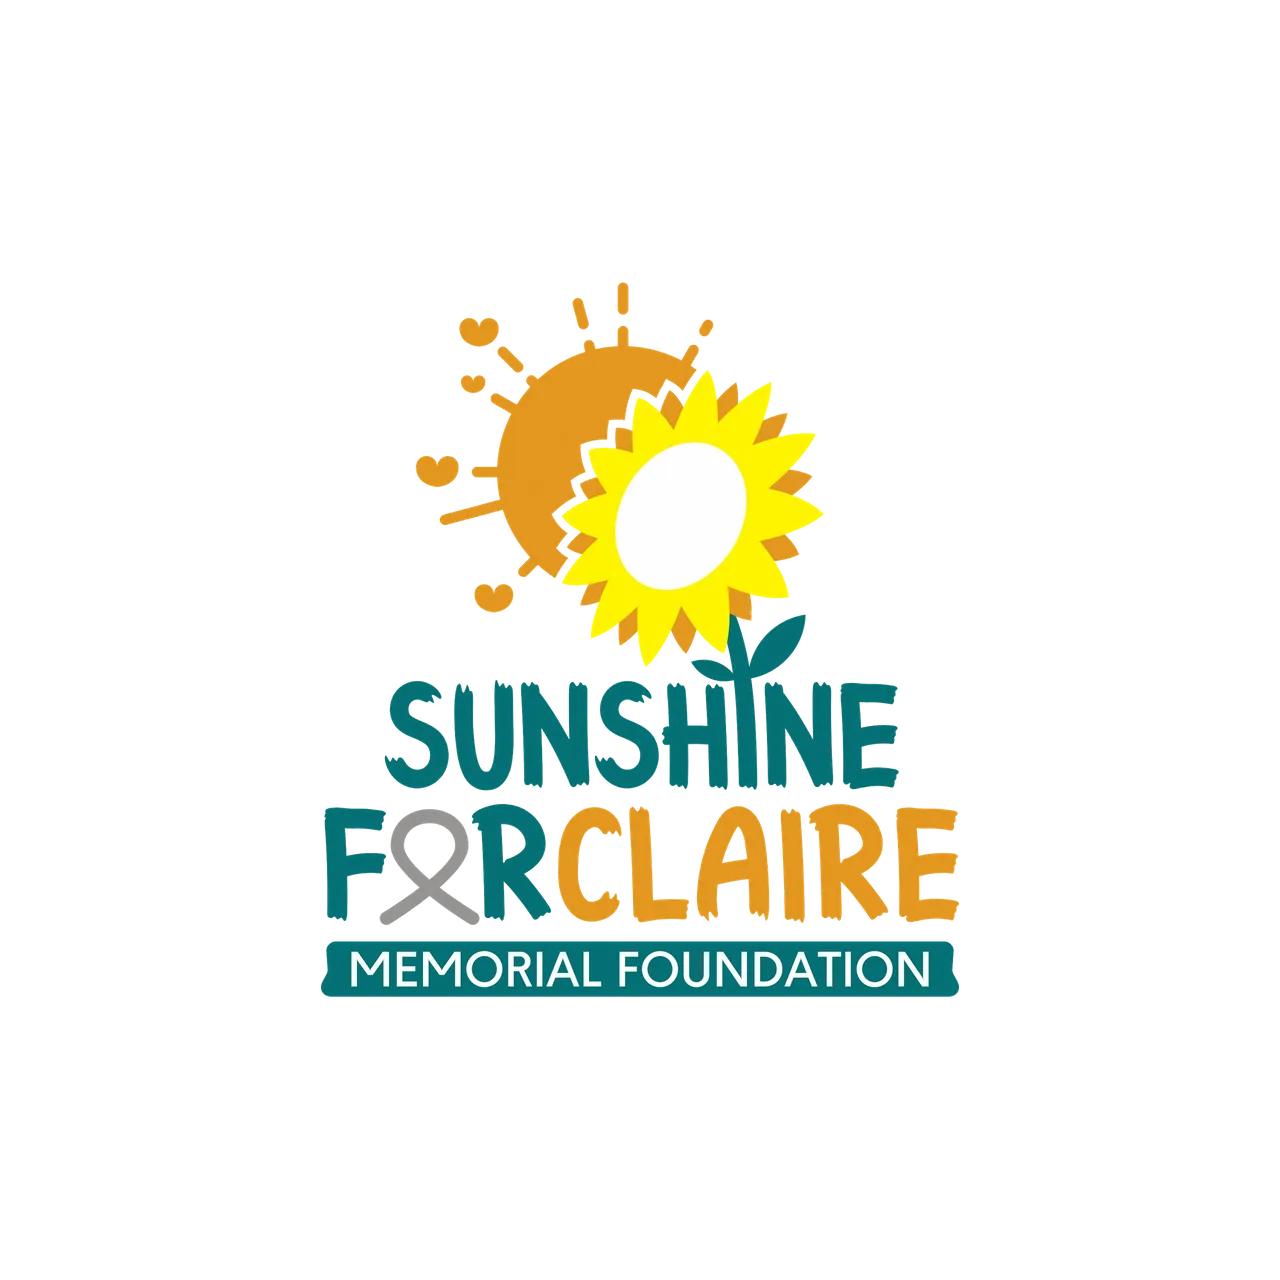 Sunshine for Claire